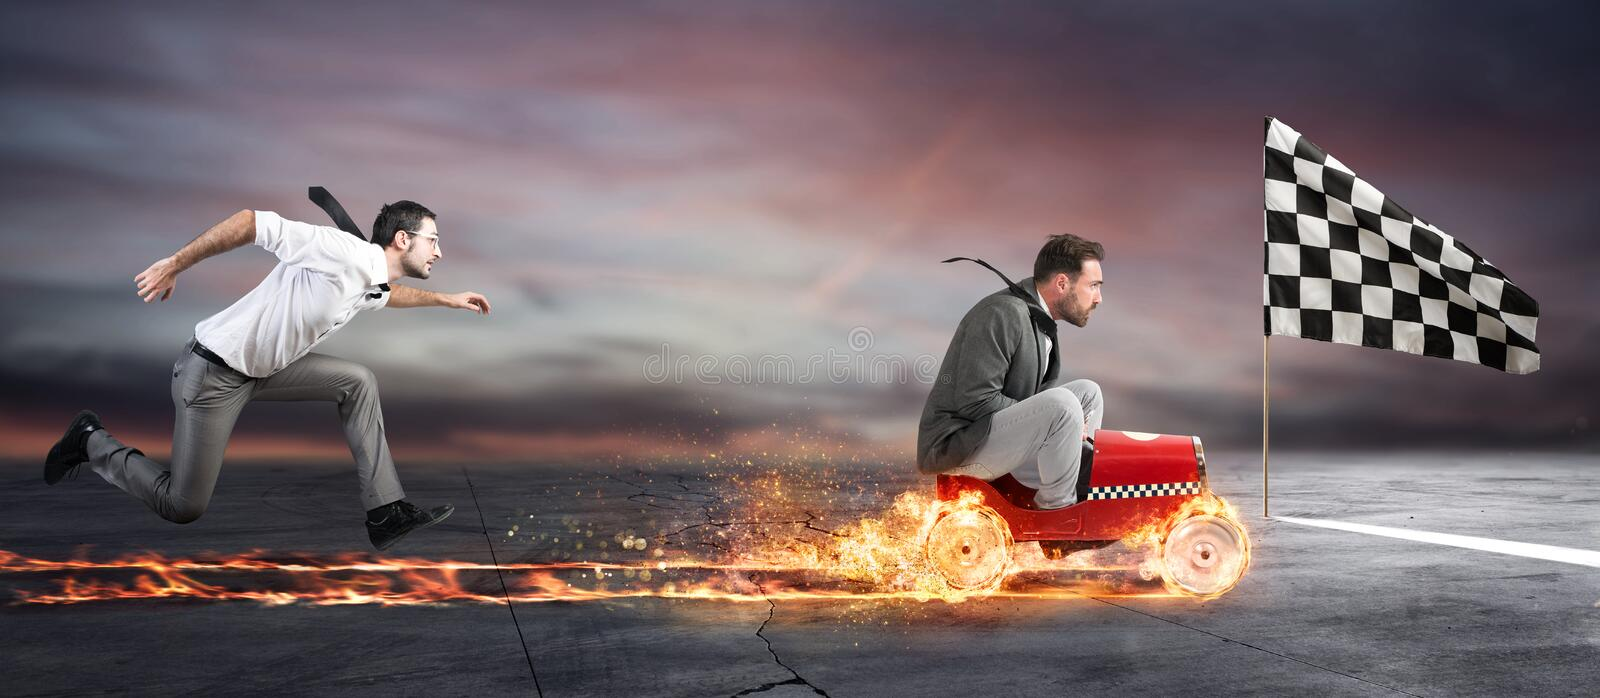 Fast businessman with a car wins against the competitors. Concept of success and competition royalty free stock photos